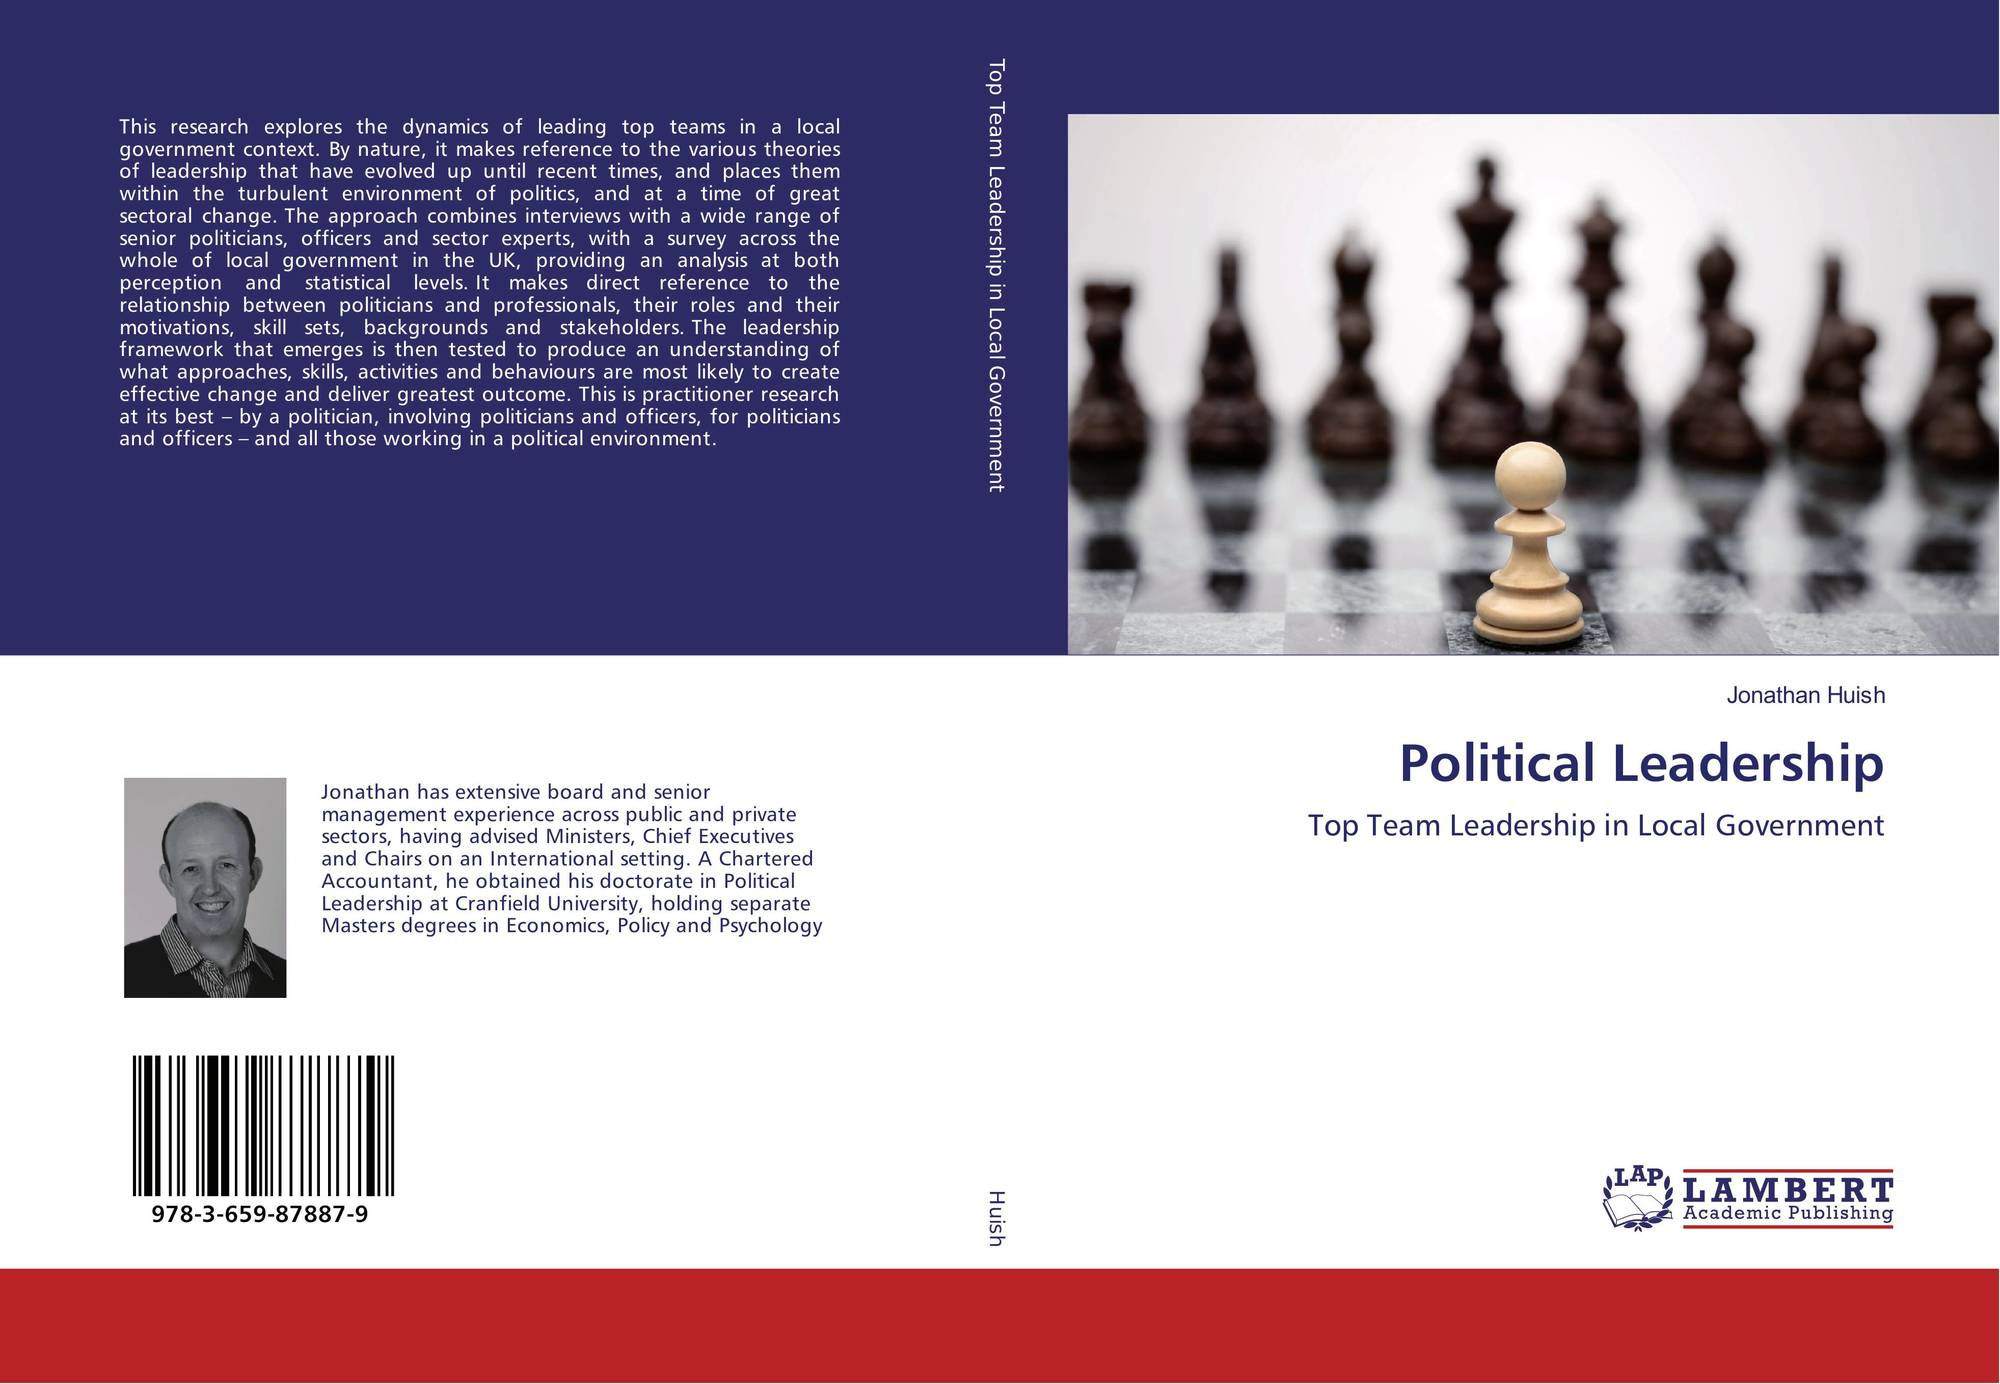 theories of local governance 1 david karlsson, local autonomy or national equalitya conflict of values and interests for political leaders, regional & federal studies, 2015, 25, 1, 19crossref 2 r m walker, r andrews, local government management and performance: a review of evidence, journal of public administration research and theory, 2015, 25, 1, 101crossref 3 arto haveri, nordic local government.